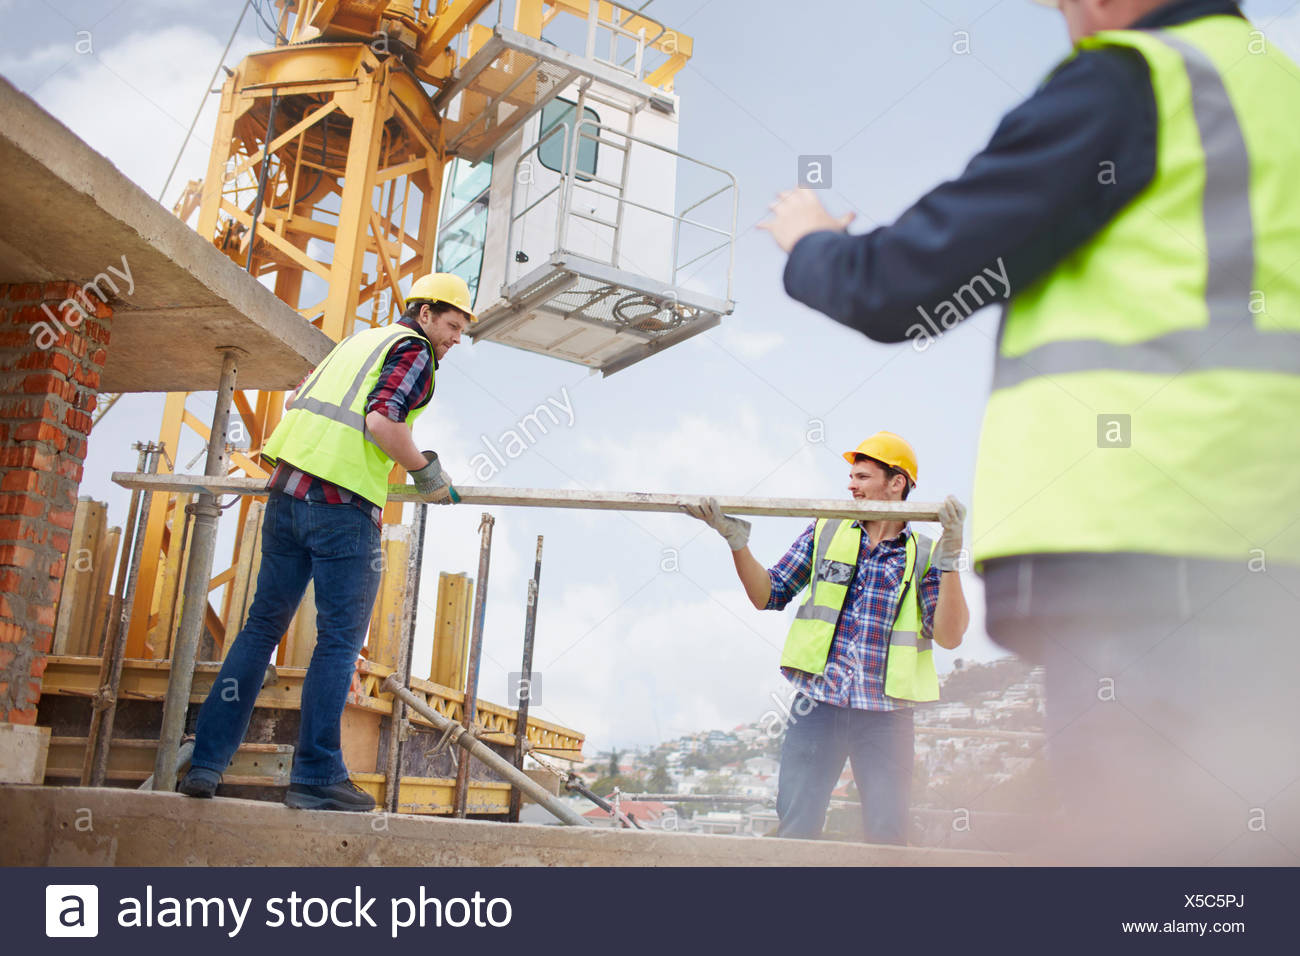 Construction workers lifting metal pole below crane at construction site Stock Photo